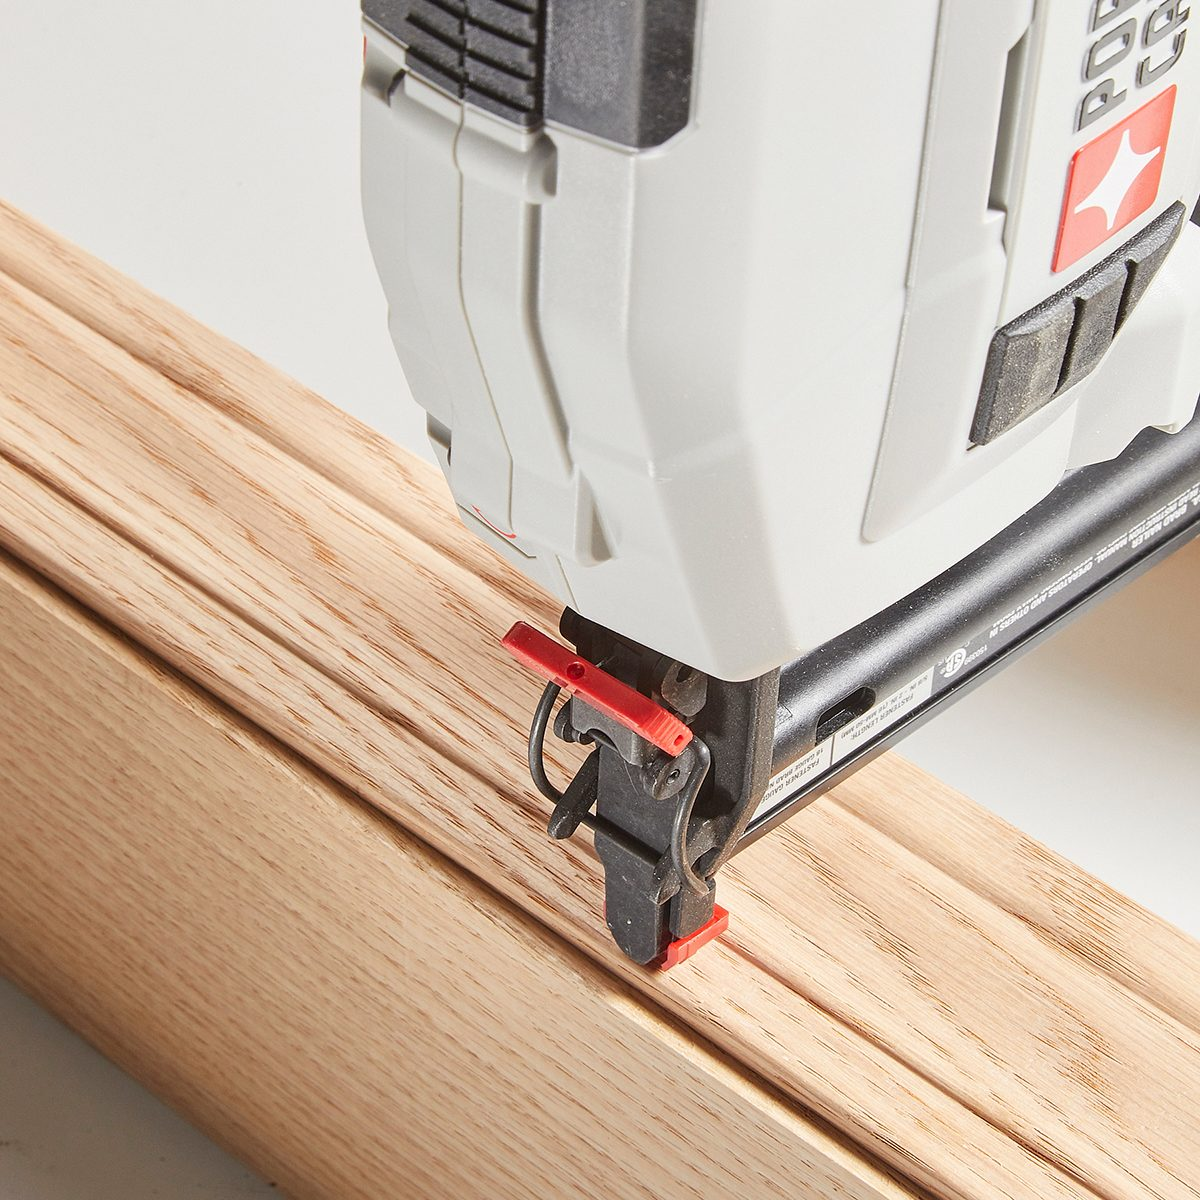 The tip of a brad nailer | Construction Pro Tips